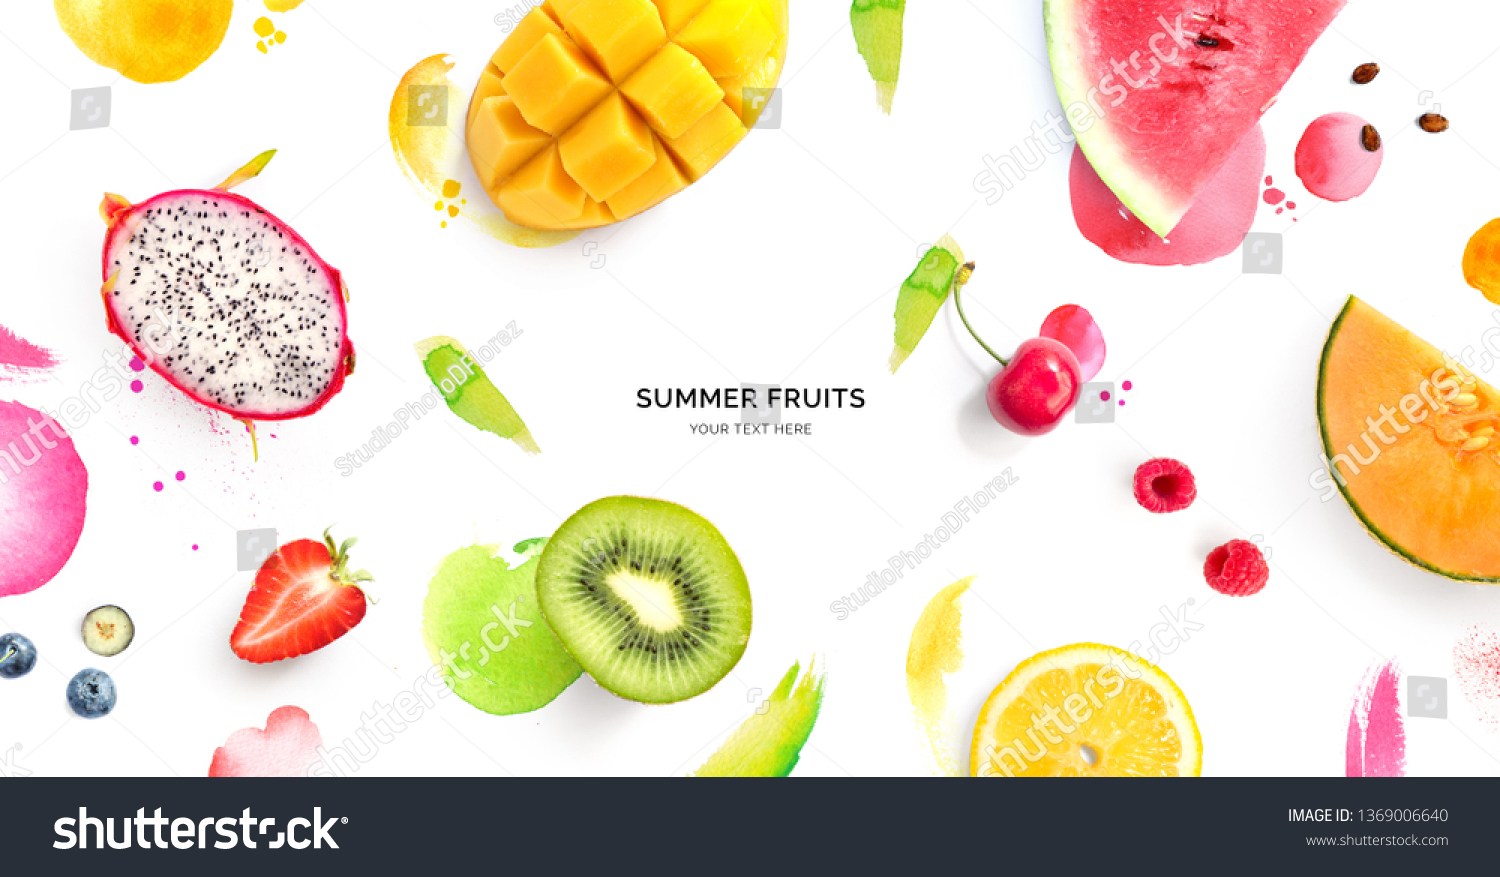 Creative layout made of dragonfruit, melon, watermelon, cherry, kiwi, strawberry, mango on the watercolor background. Flat lay. Food concept. #1369006640